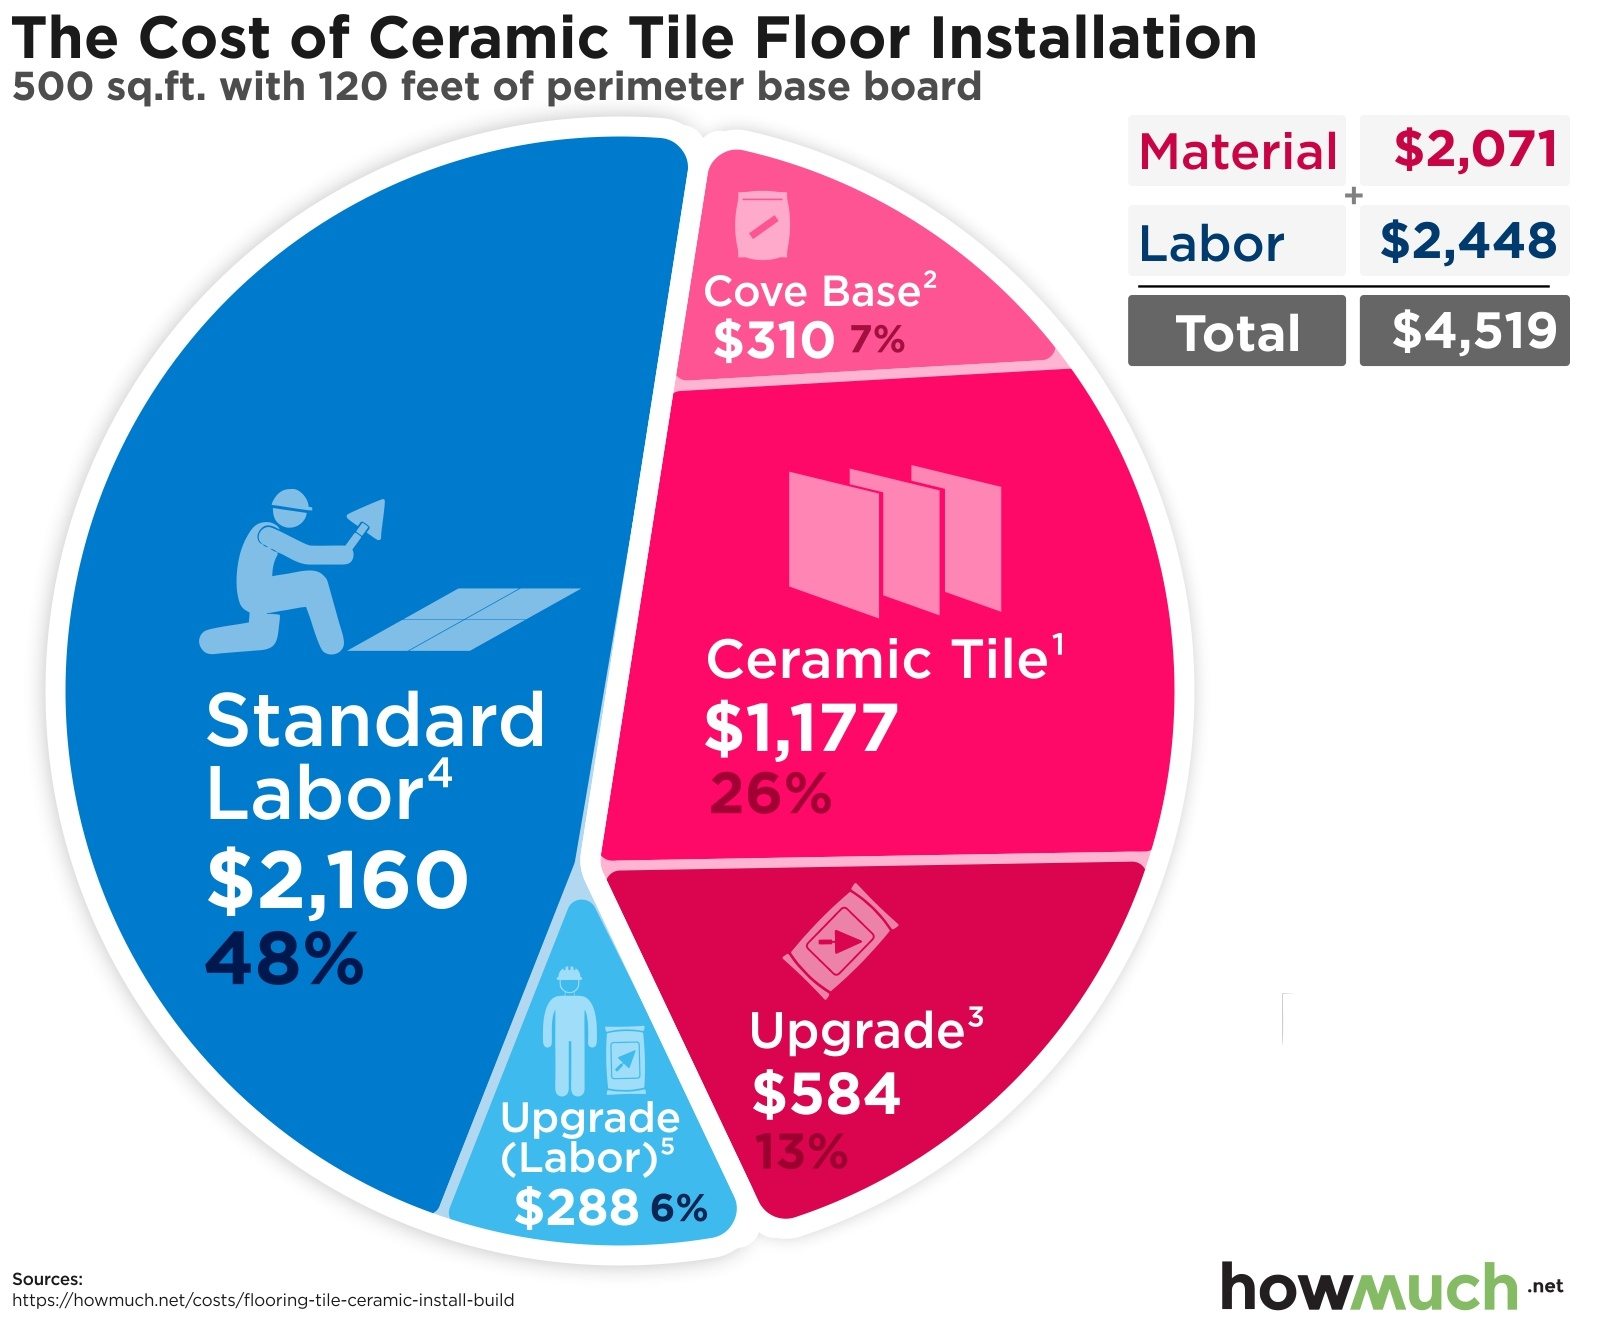 The Cost of Ceramic Tile Floor Installation